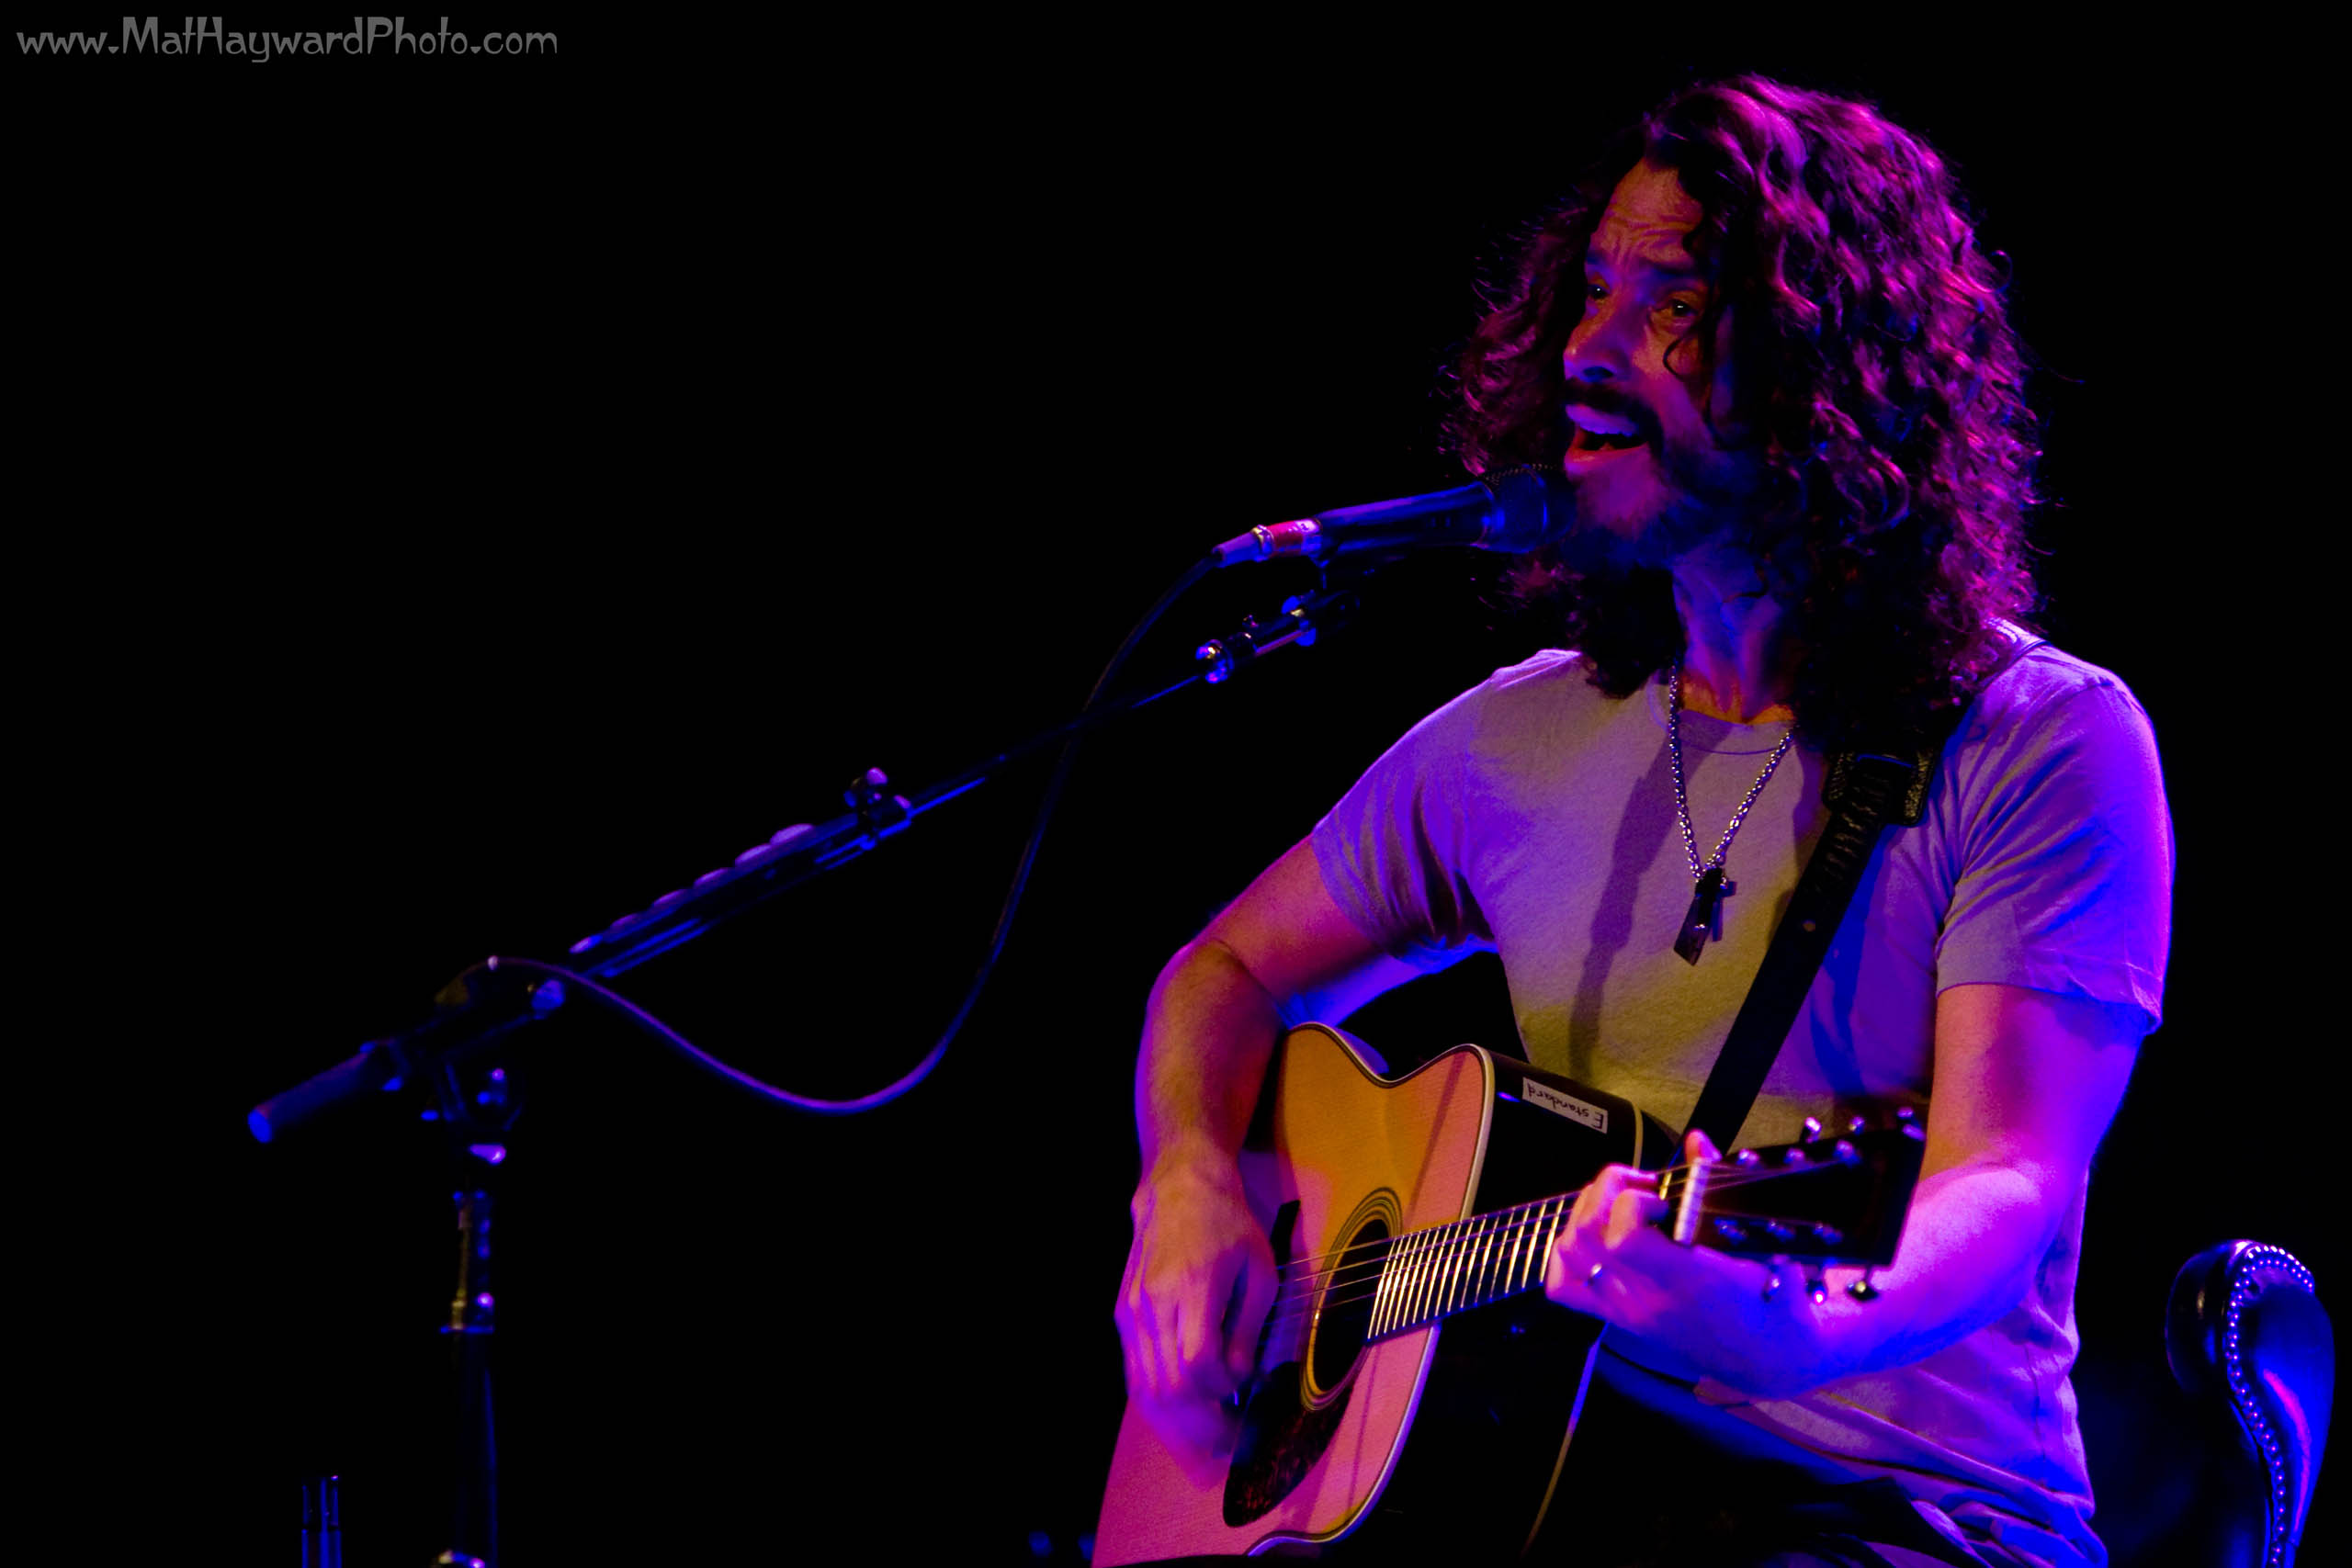 Chris Cornell solo acoustic @ The Moore Theatre in Seattle